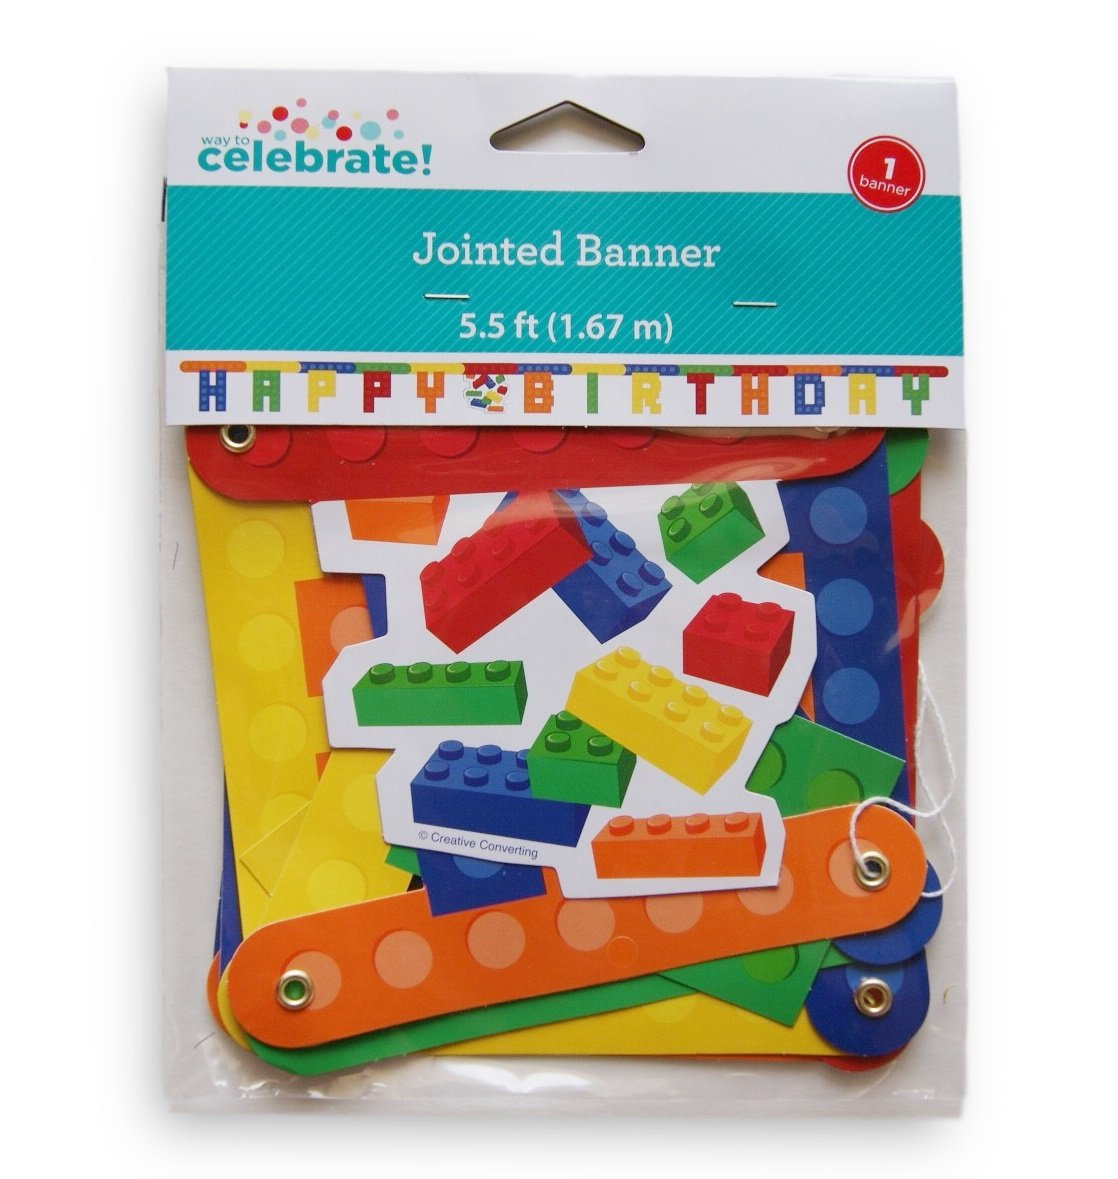 Table Cover and Banner Retail Inc Way to Celebrate Toy Brick Themed Party Supply Set